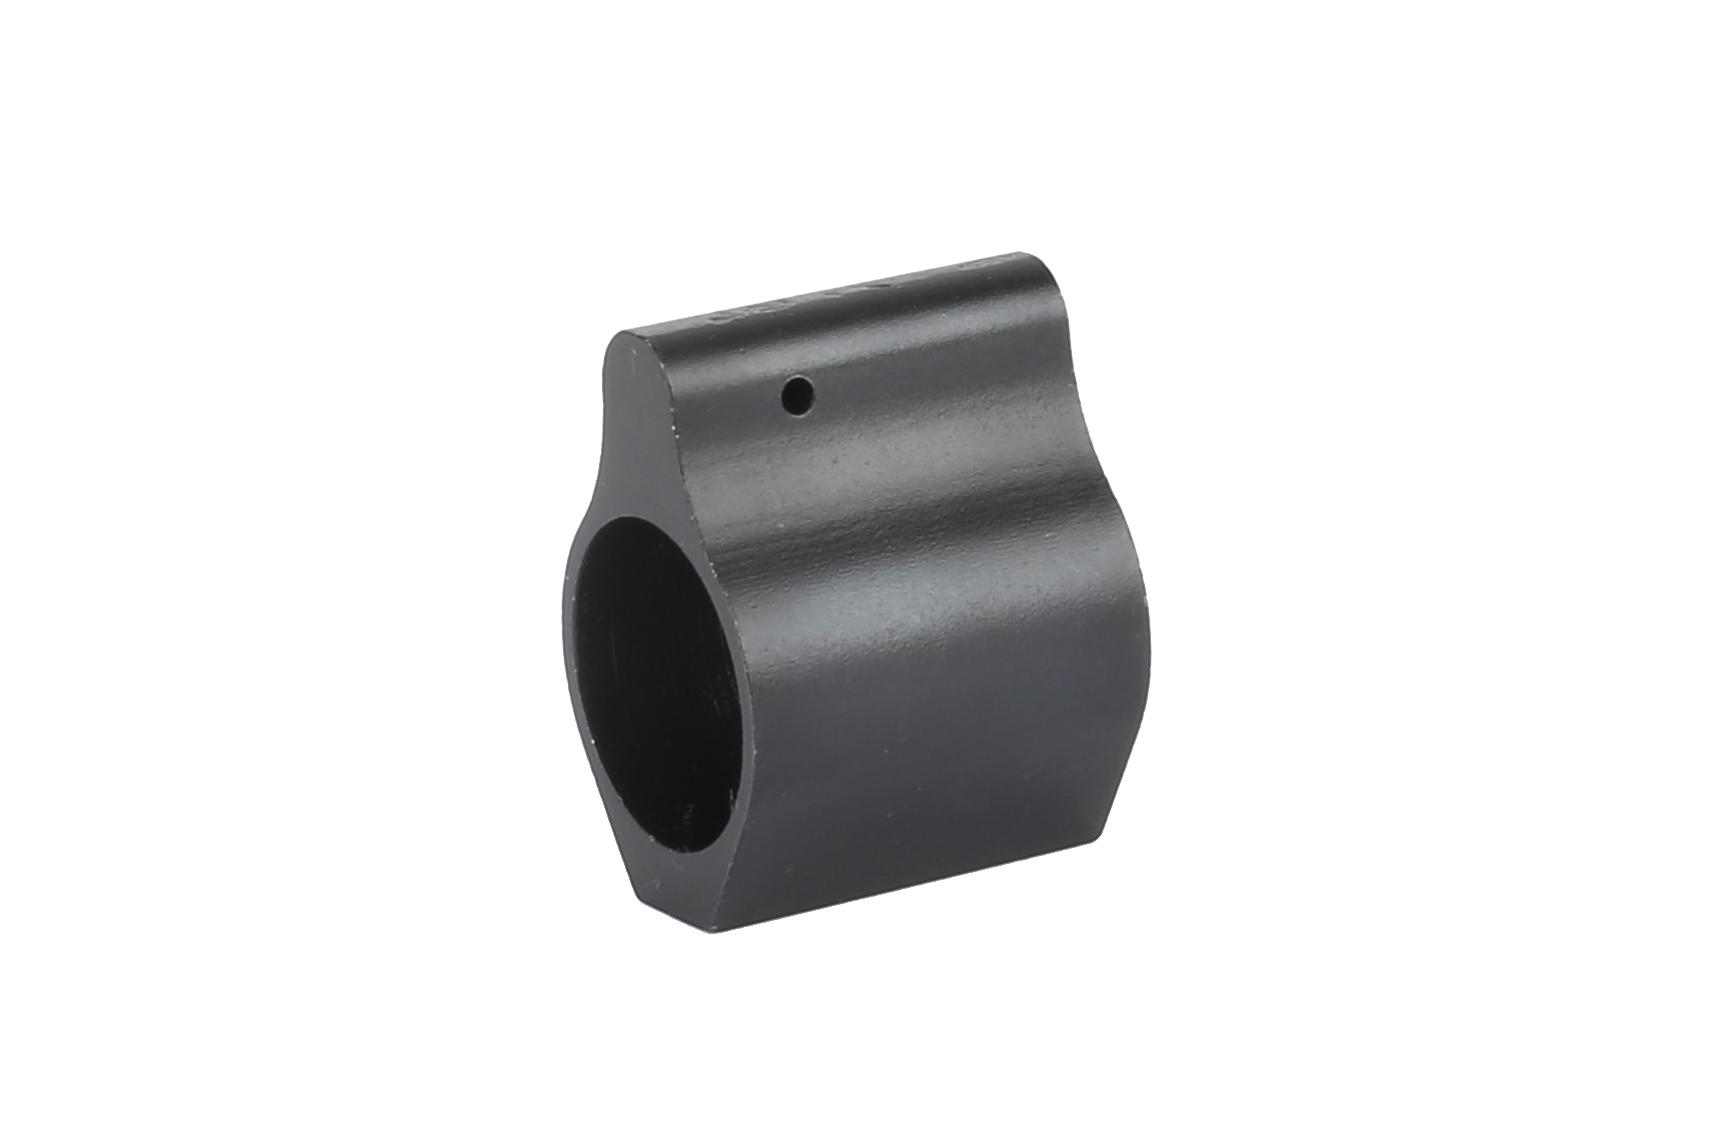 The Expo Arms set screw gas block features a manganese phosphate finish